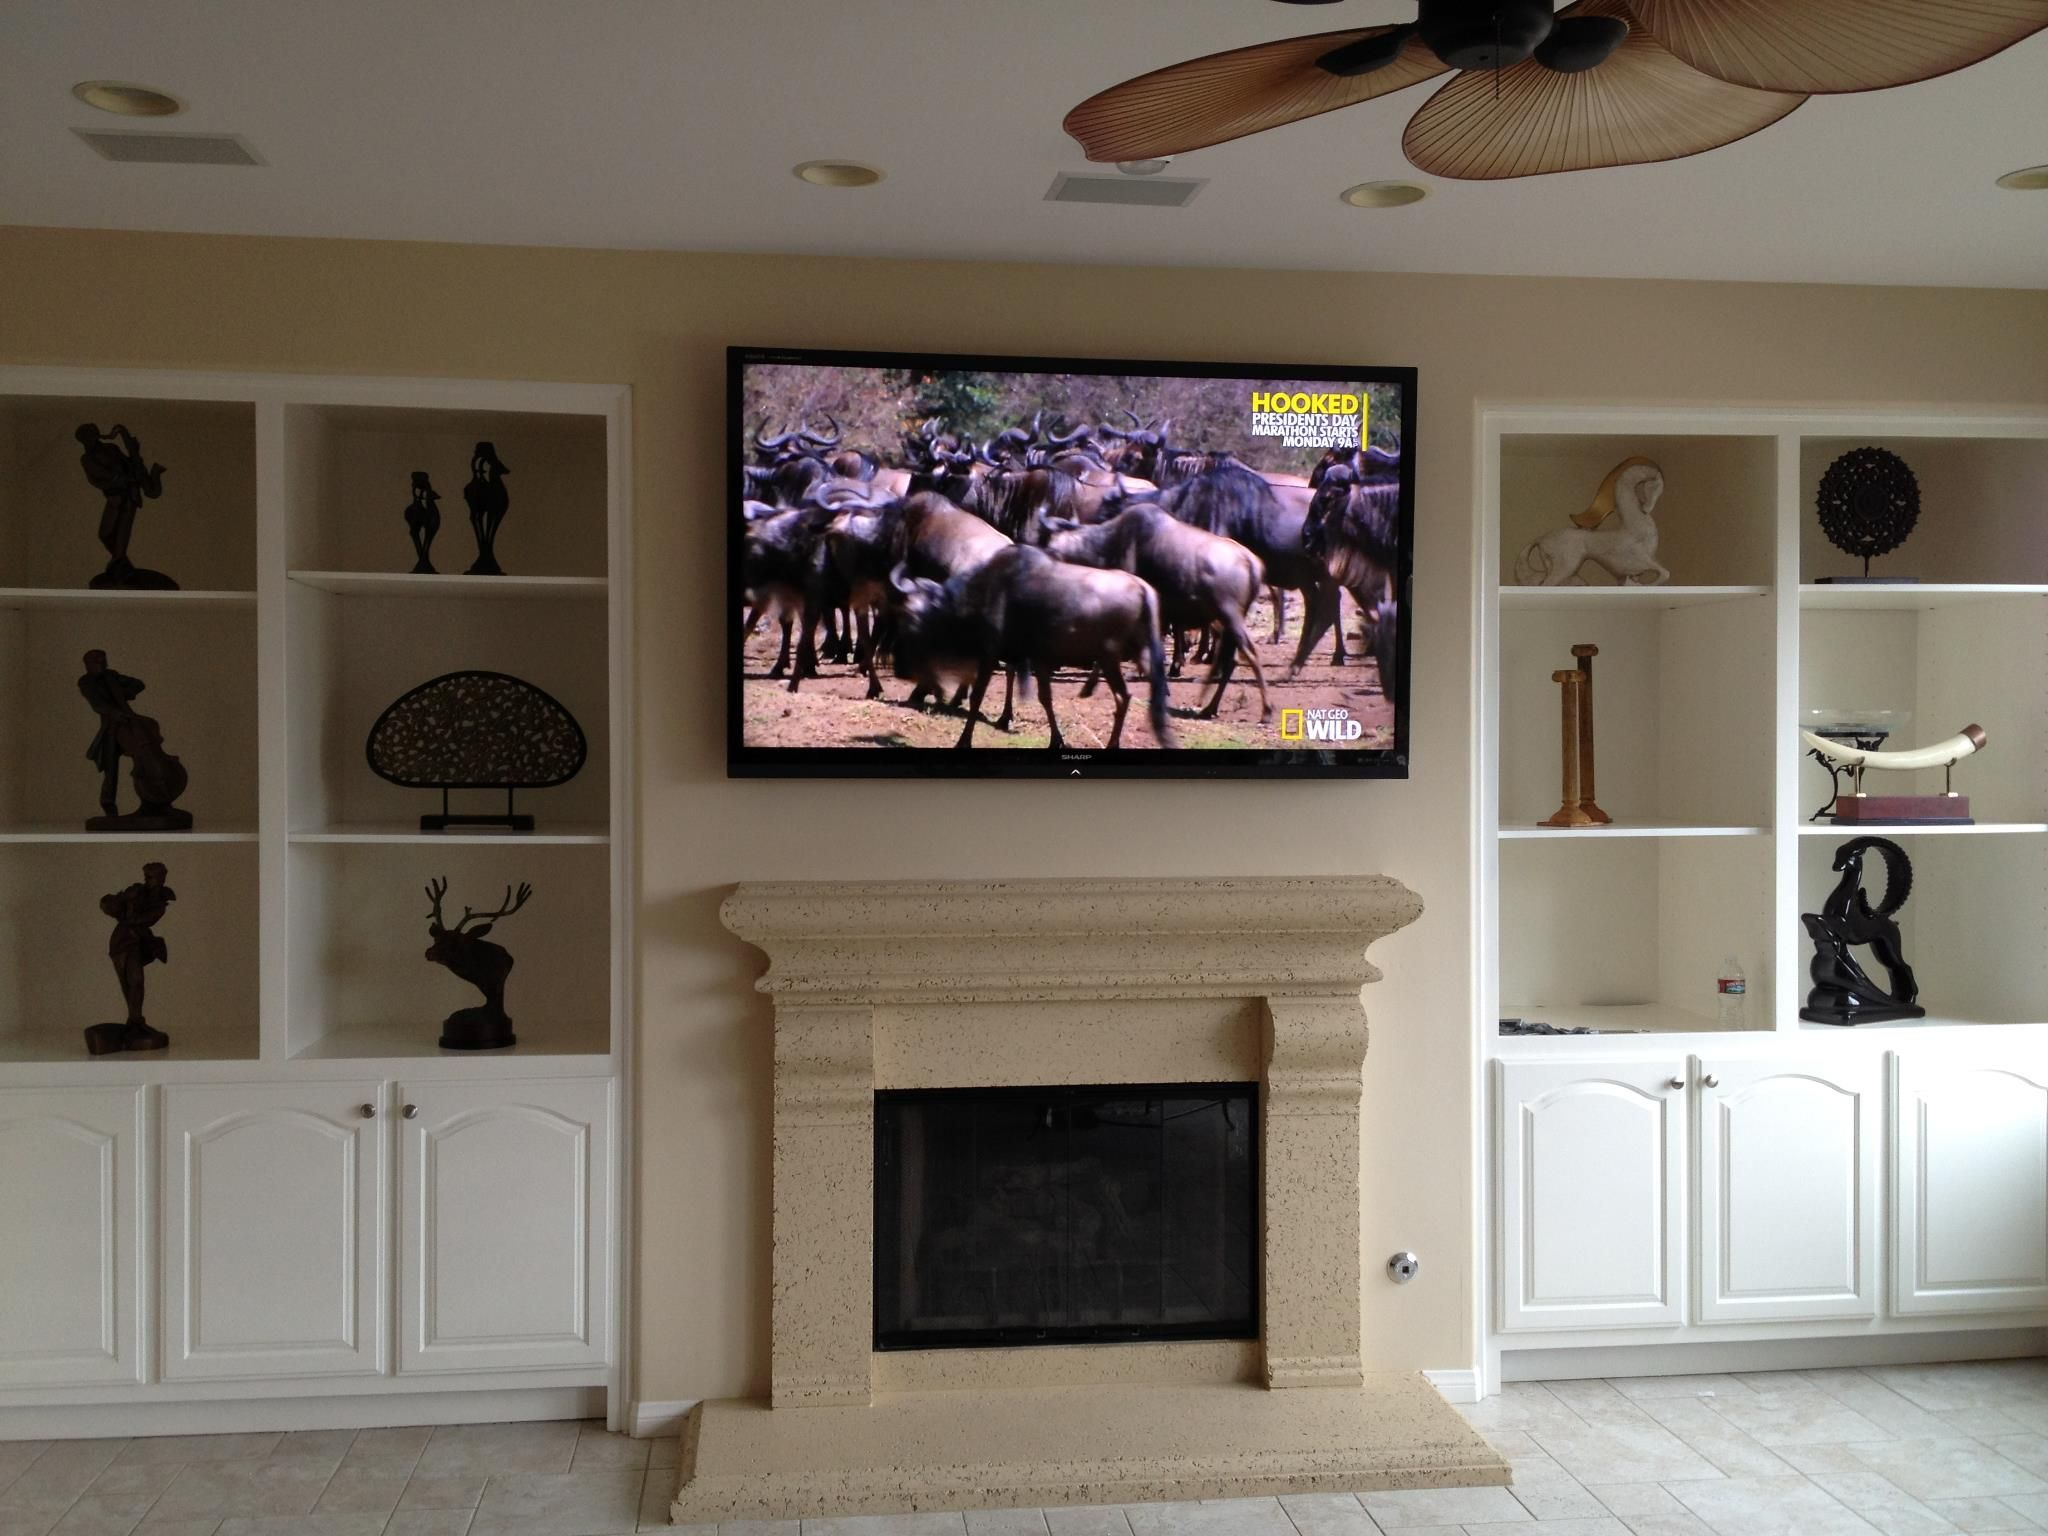 TV Installation Above A Fireplace By Theater Monster | Home Theater |  Pinterest | Tv Installation, Photo Galleries And Surround Sound